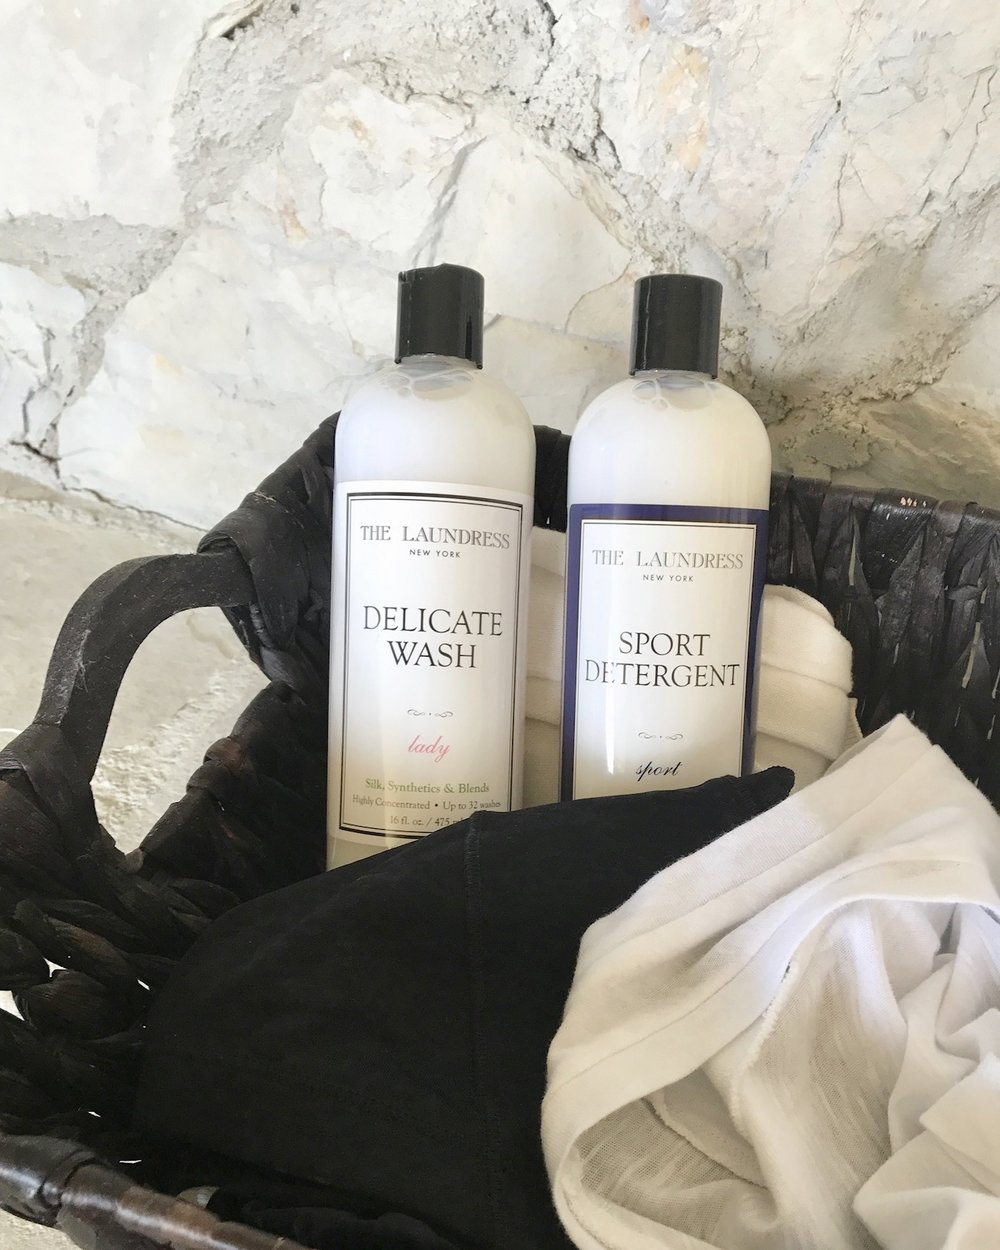 BUY: The  Laundress Delicate Wash ,  Laundress Sport Detergent